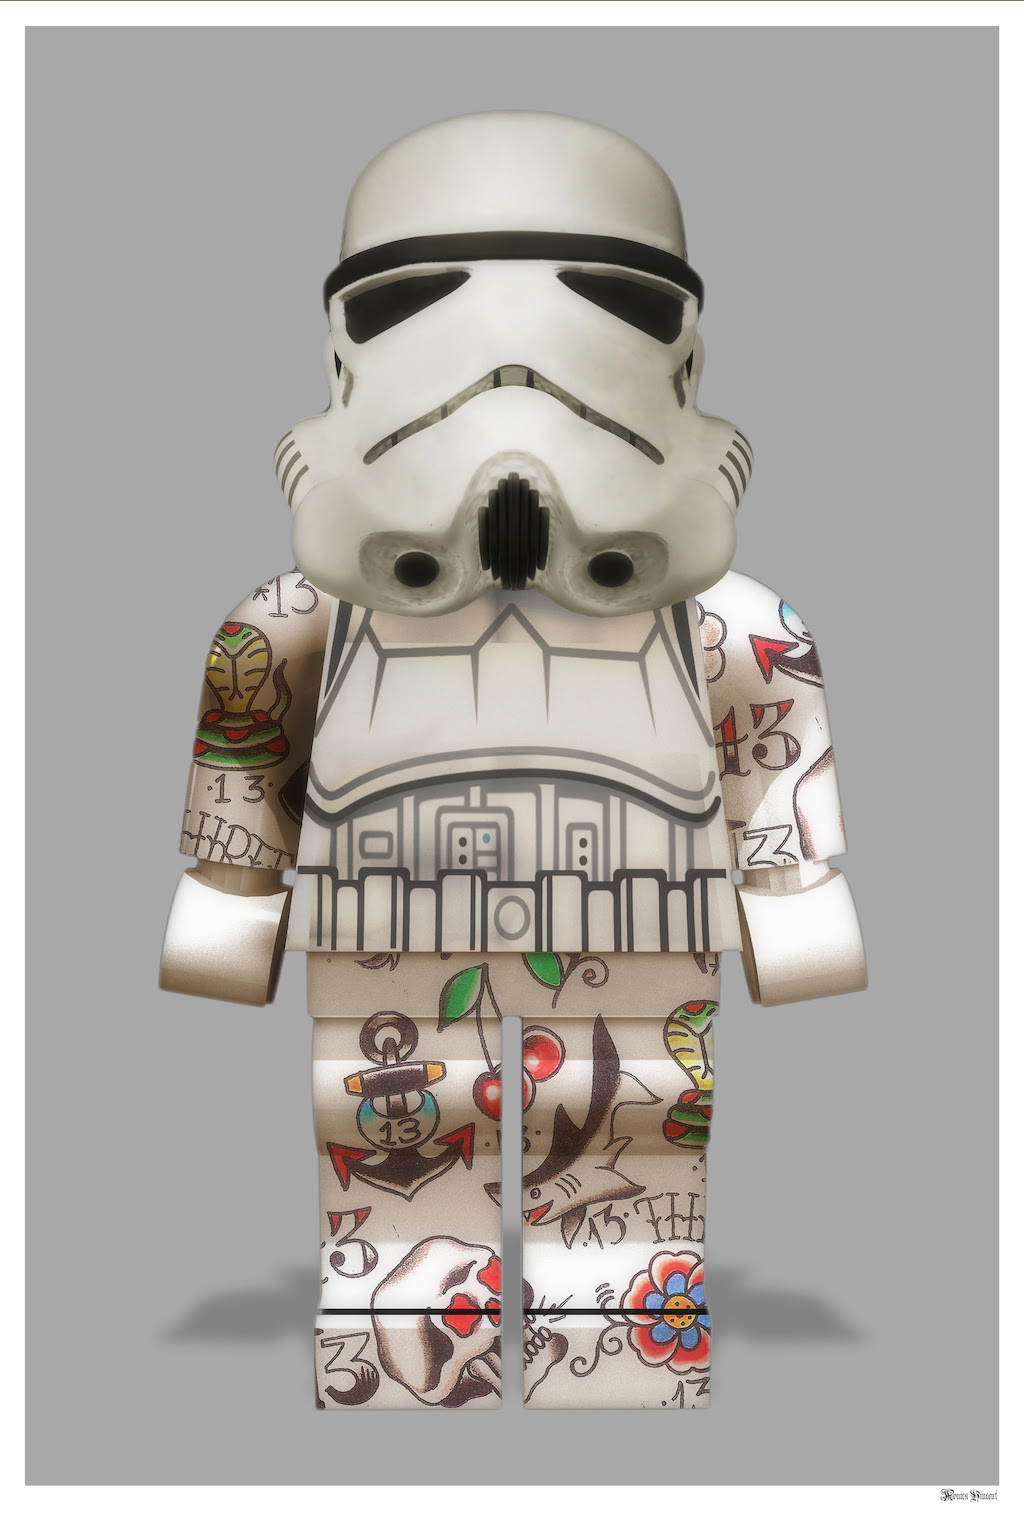 Lego Storm Trooper (Grey Background) - Small - Framed by Monica Vincent